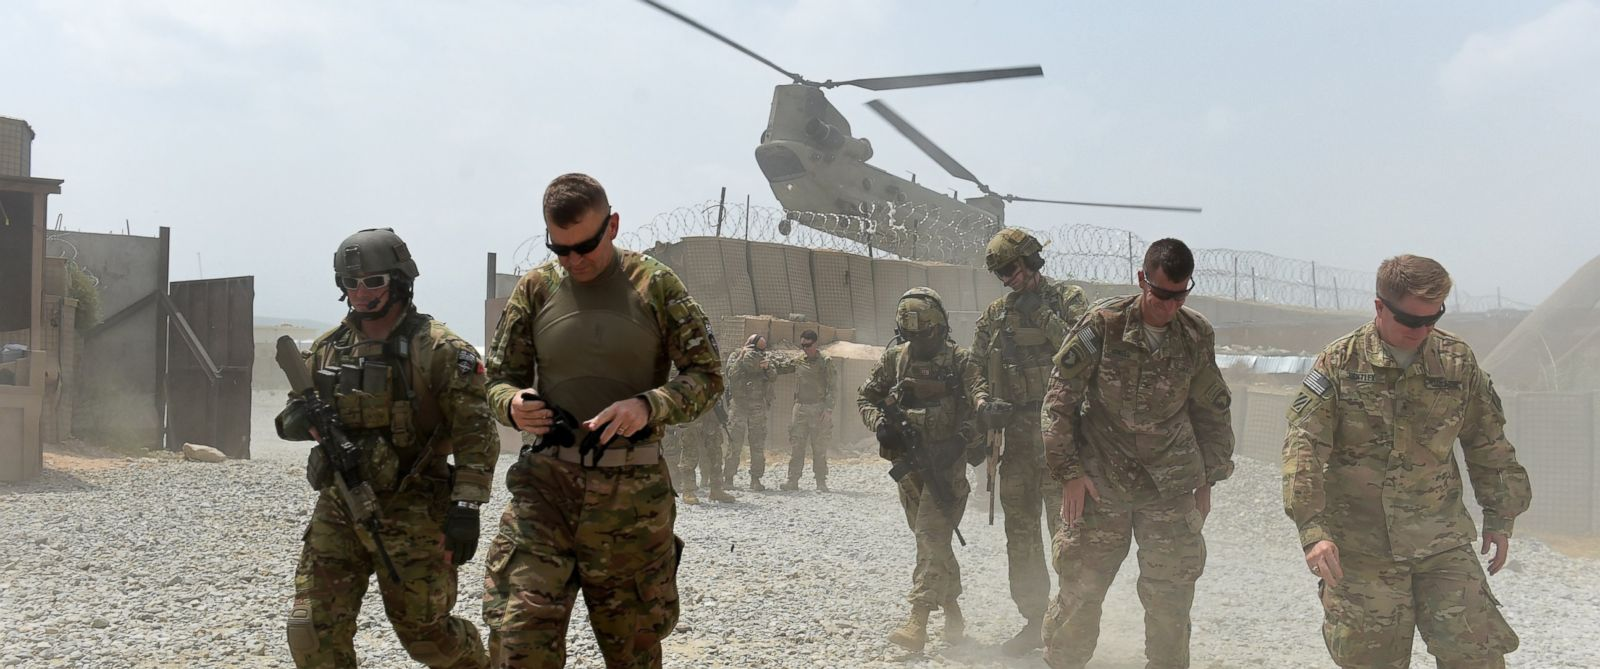 PHOTO: In this photograph taken on August 13, 2015, US army soldiers walk as a NATO helicopter flies overhead at coalition force Forward Operating Base (FOB) Connelly in the Khogyani district in the eastern province of Nangarhar.